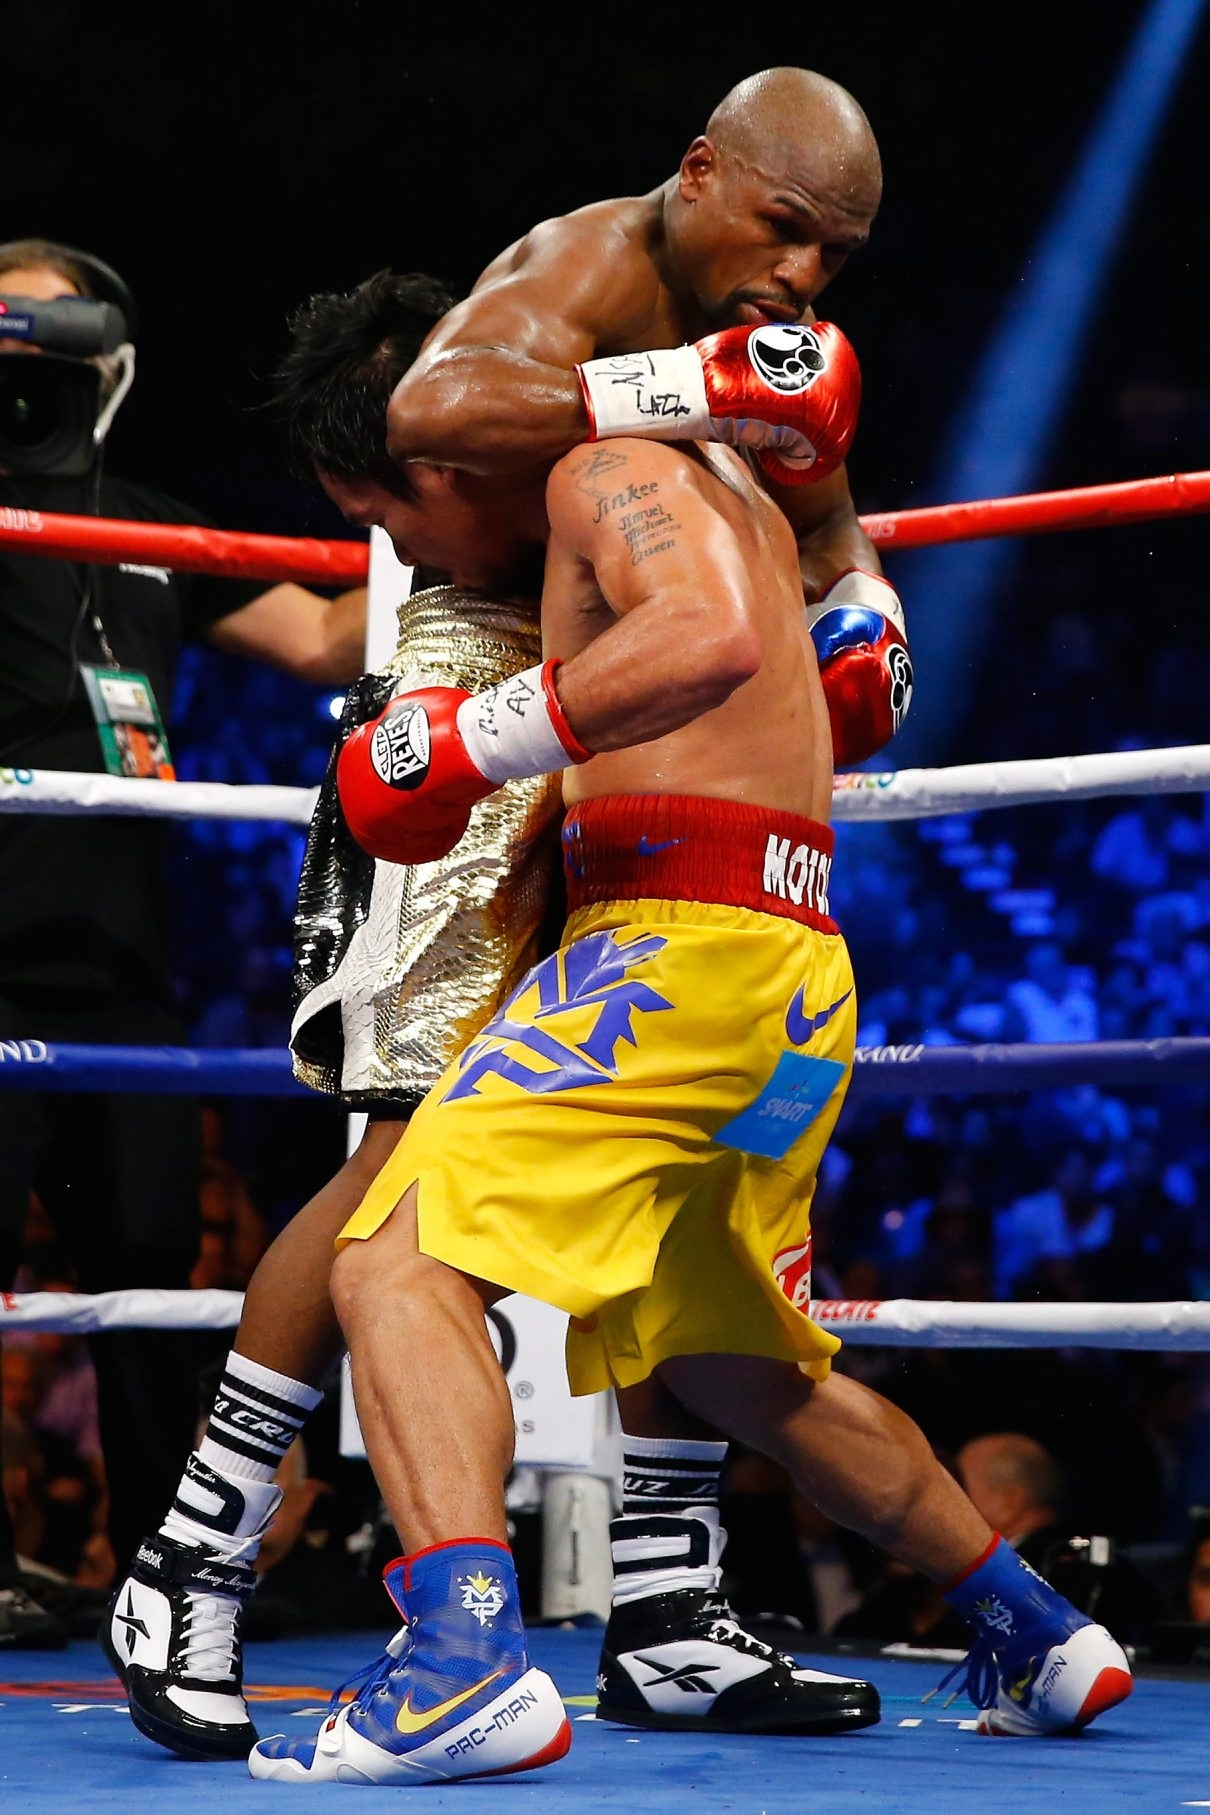 Floyd Mayweather Jr. and Manny Pacquiao's fight had too late a start for some boxing fans.